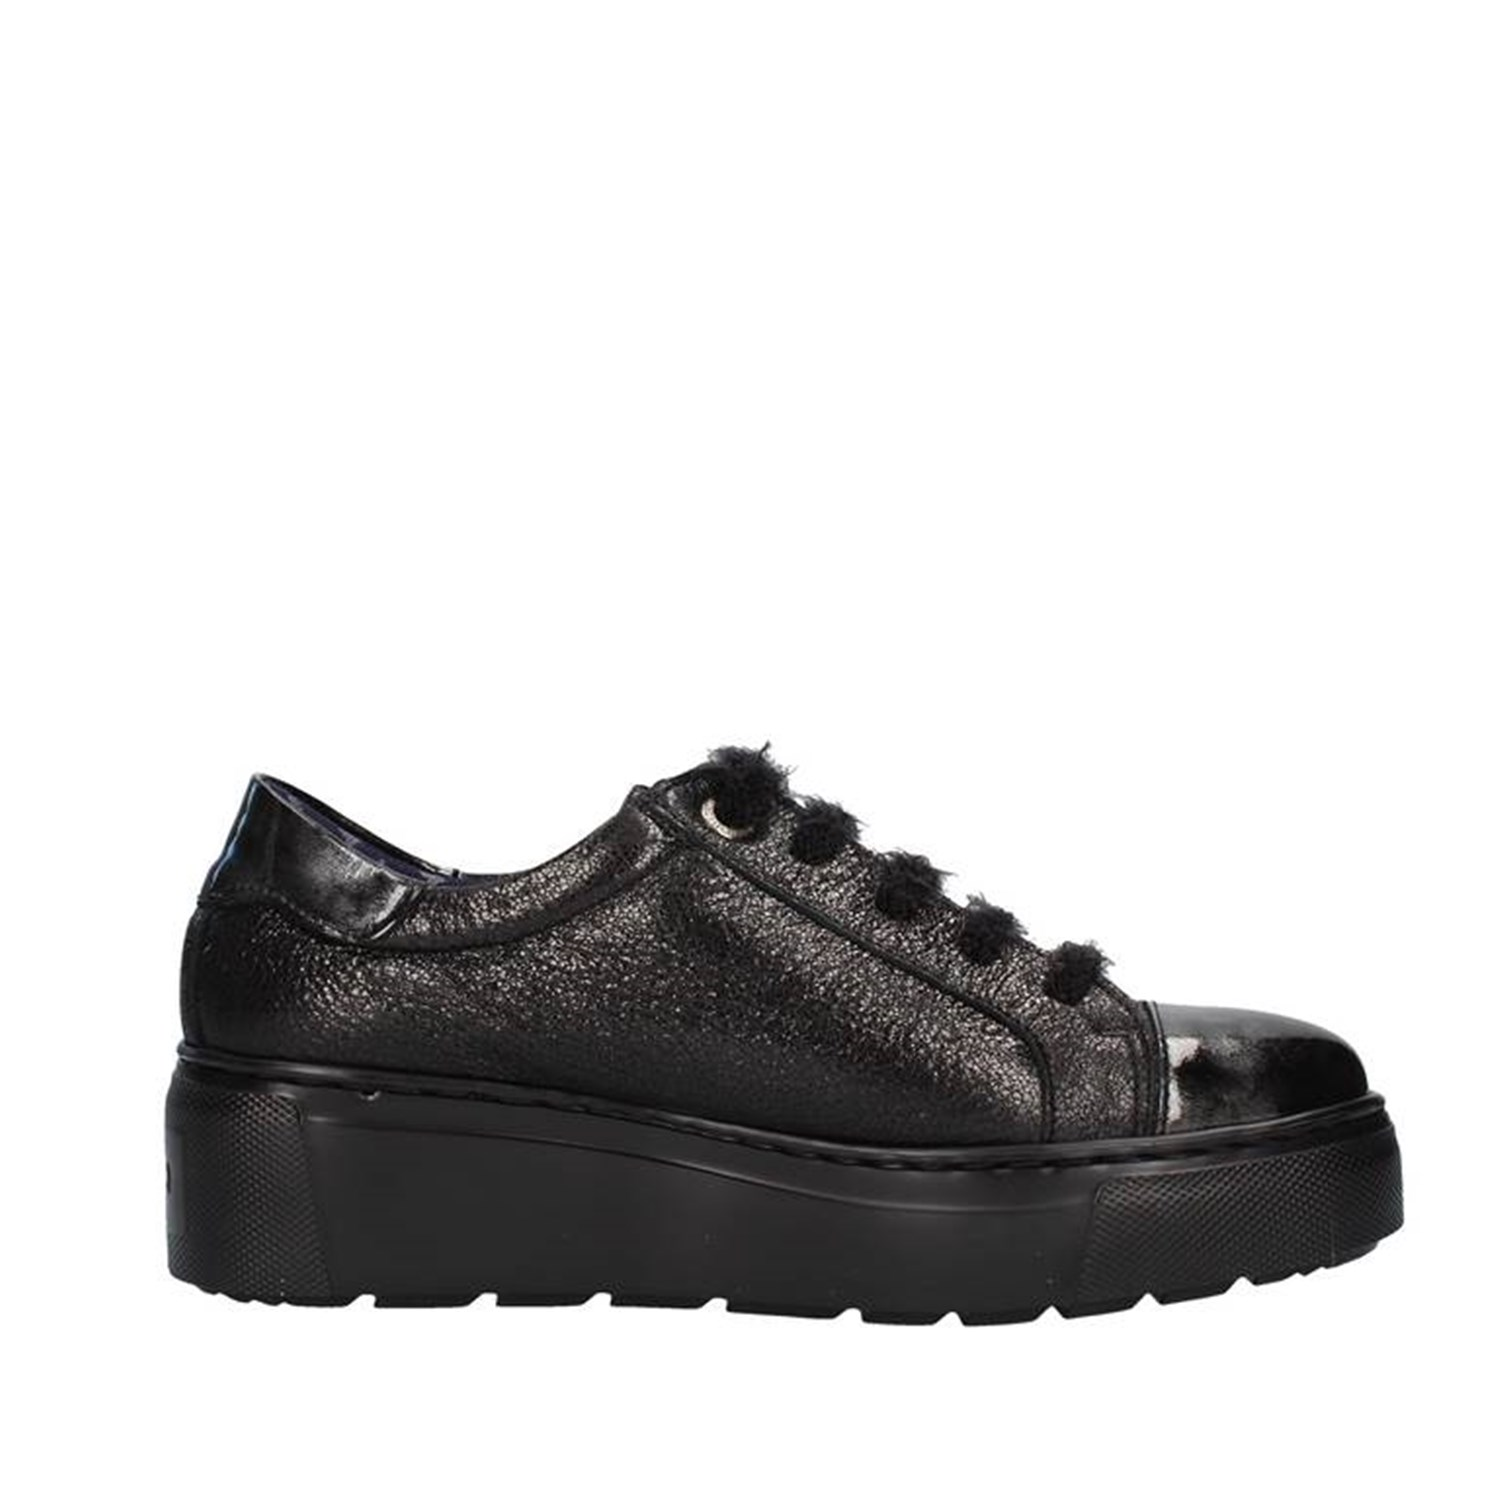 Callaghan Shoes Woman low BLACK 14906